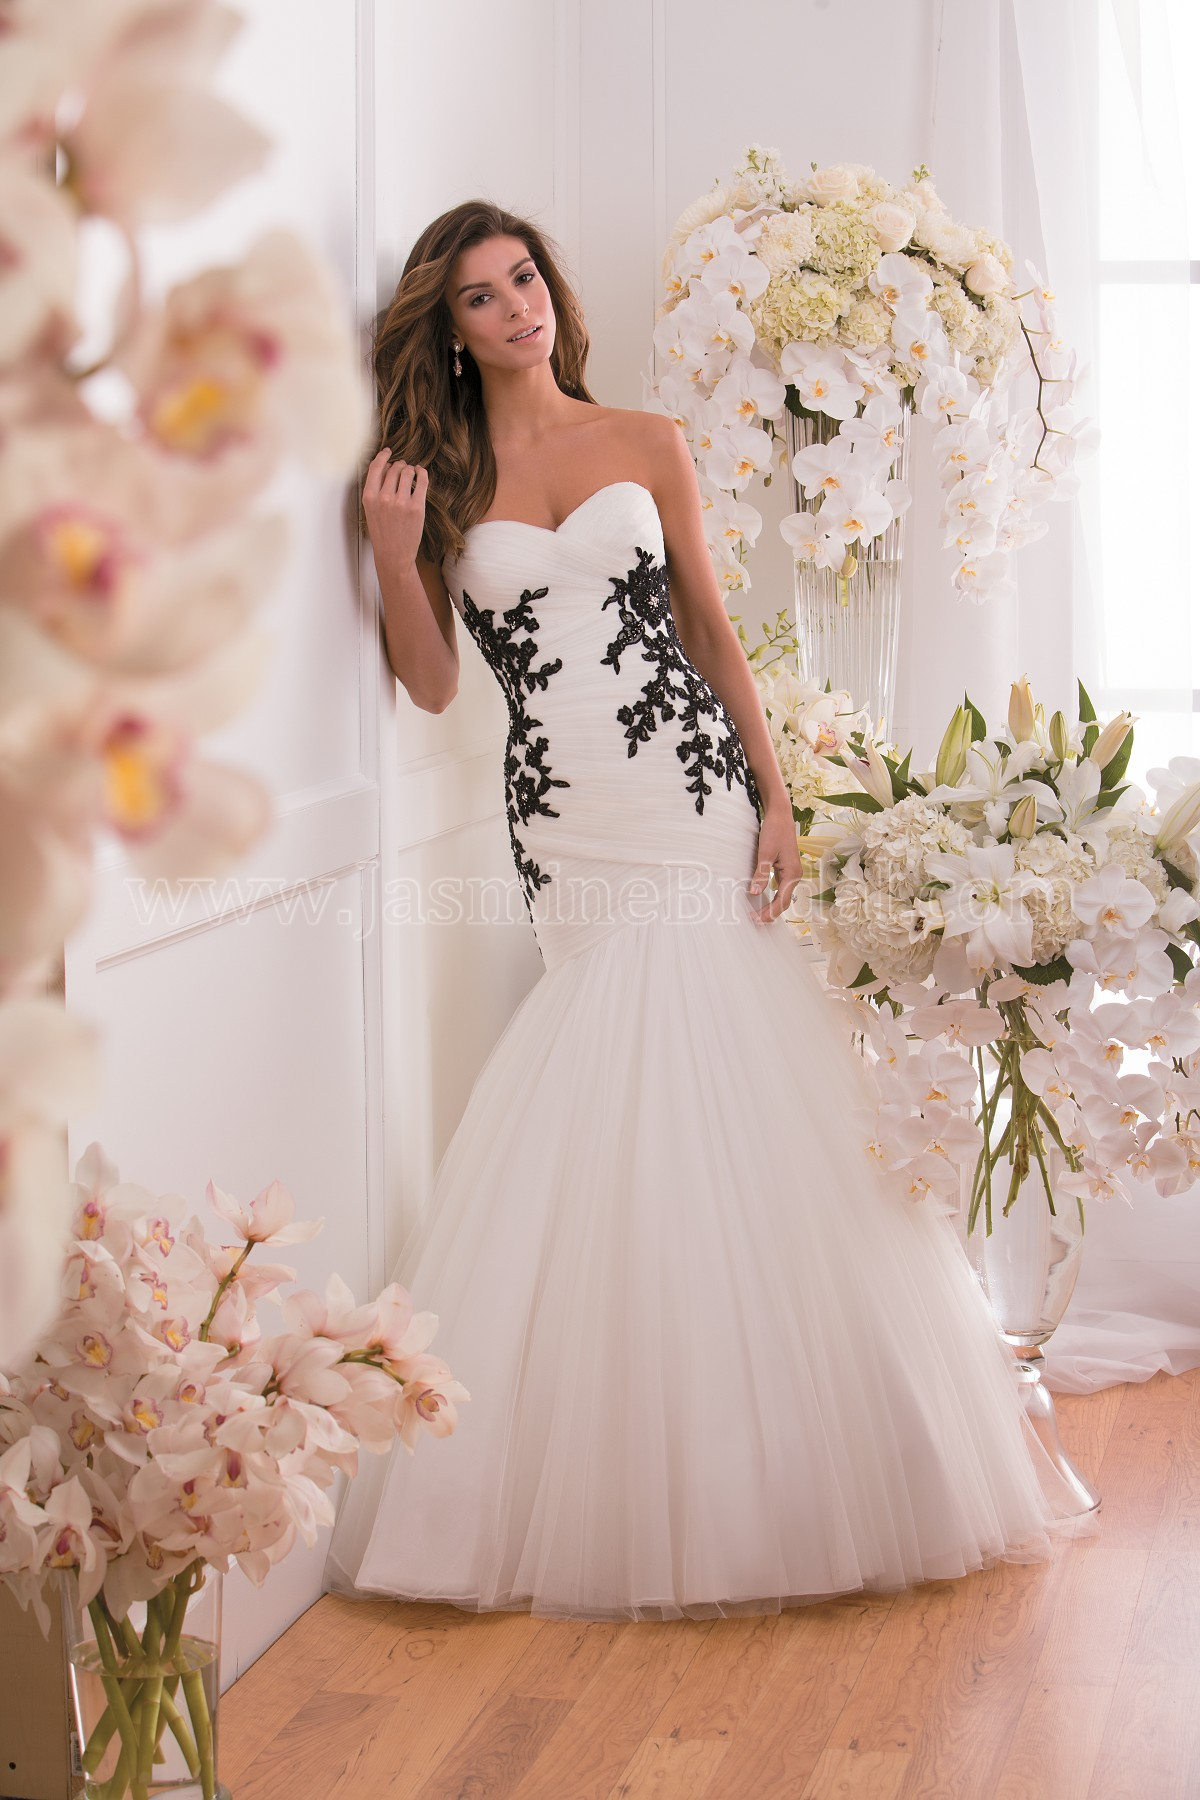 F171008 Sweetheart Strapless Lace & Soft Tulle Fit & Flare Wedding Dress